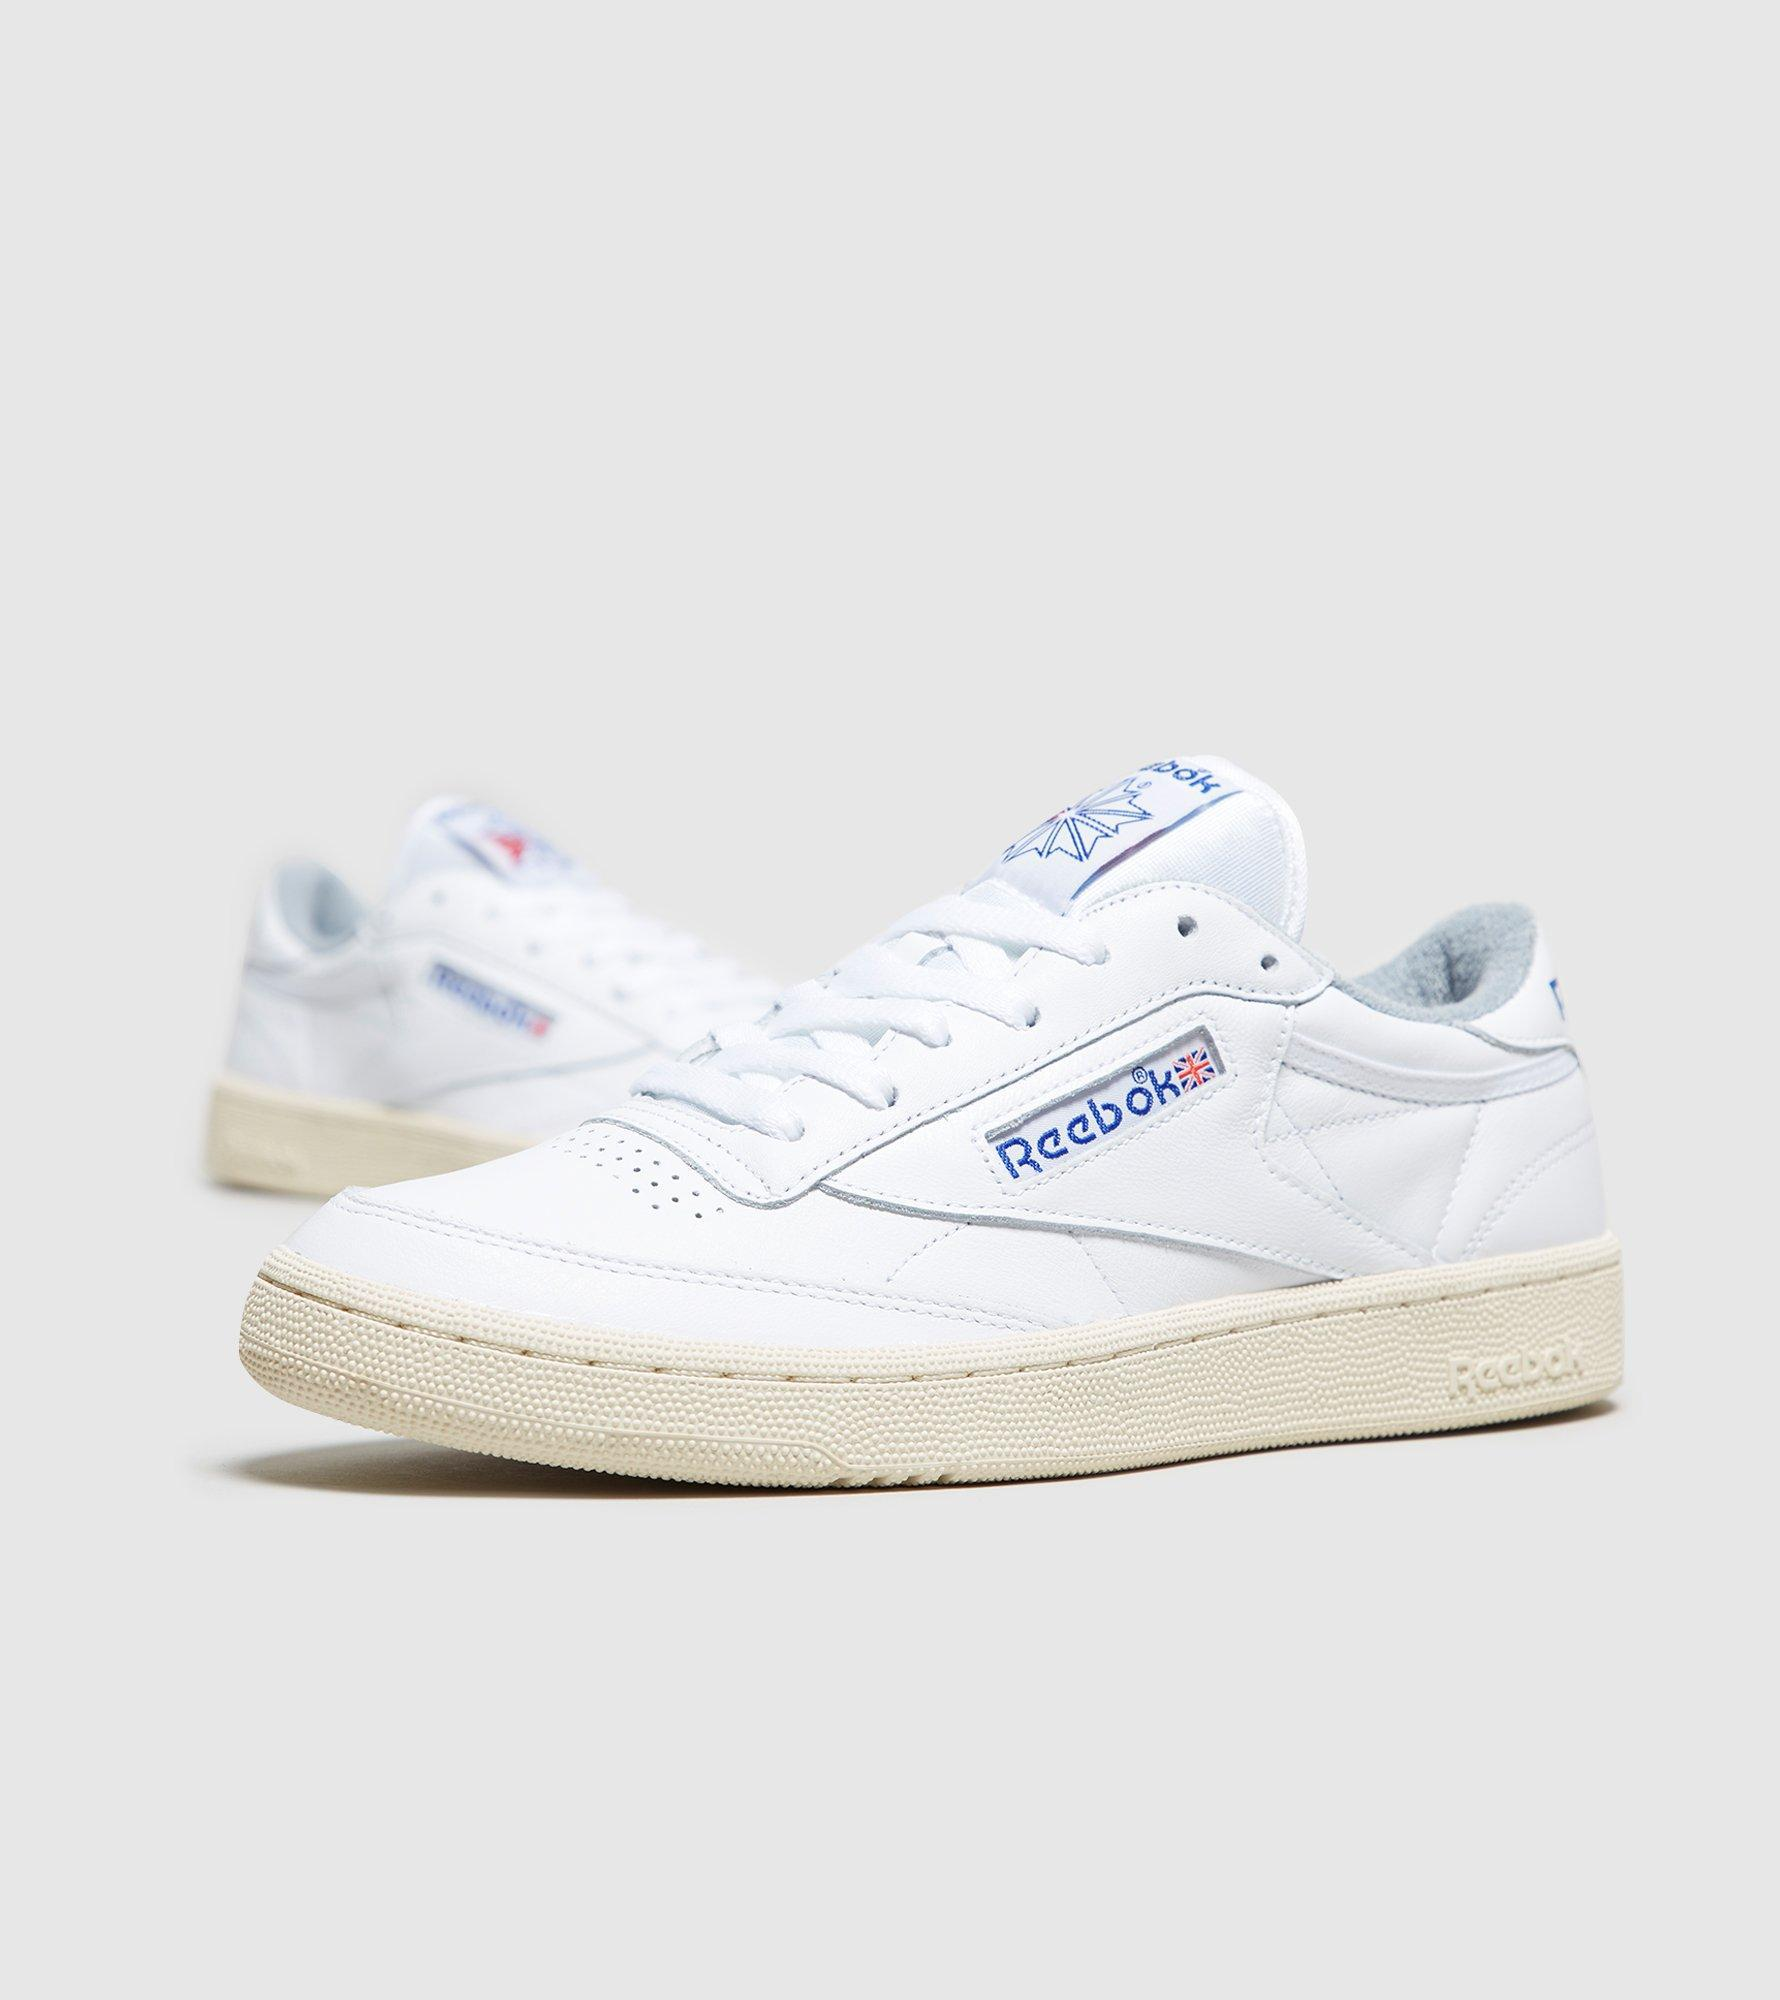 f68154f1a7c Lyst - Reebok Club C Vintage in White for Men